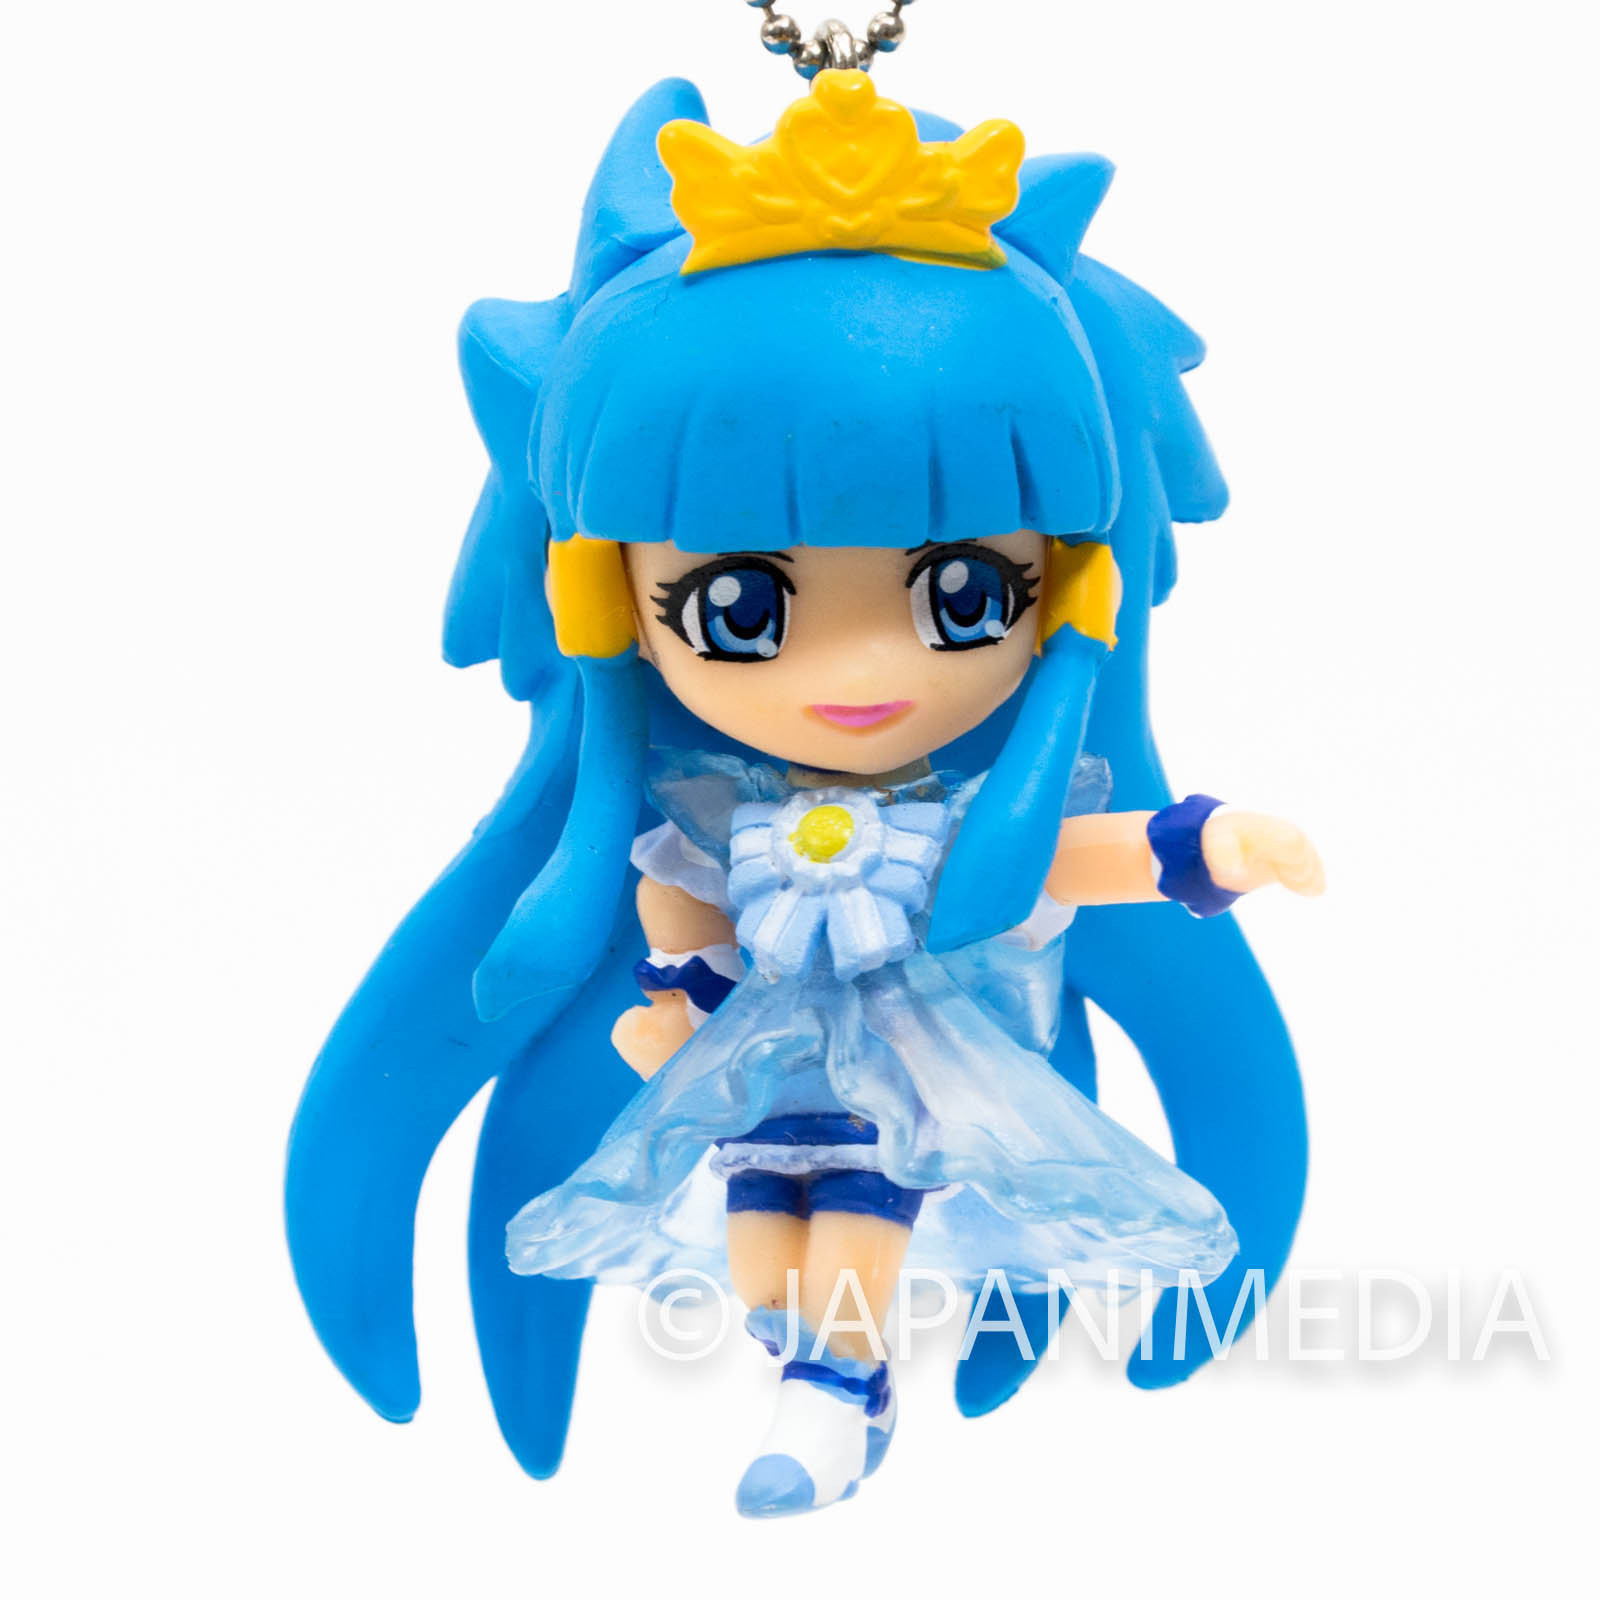 Smile PreCure! Princess Beauty PreCure Mascot Figure Ball Keychain JAPAN ANIME